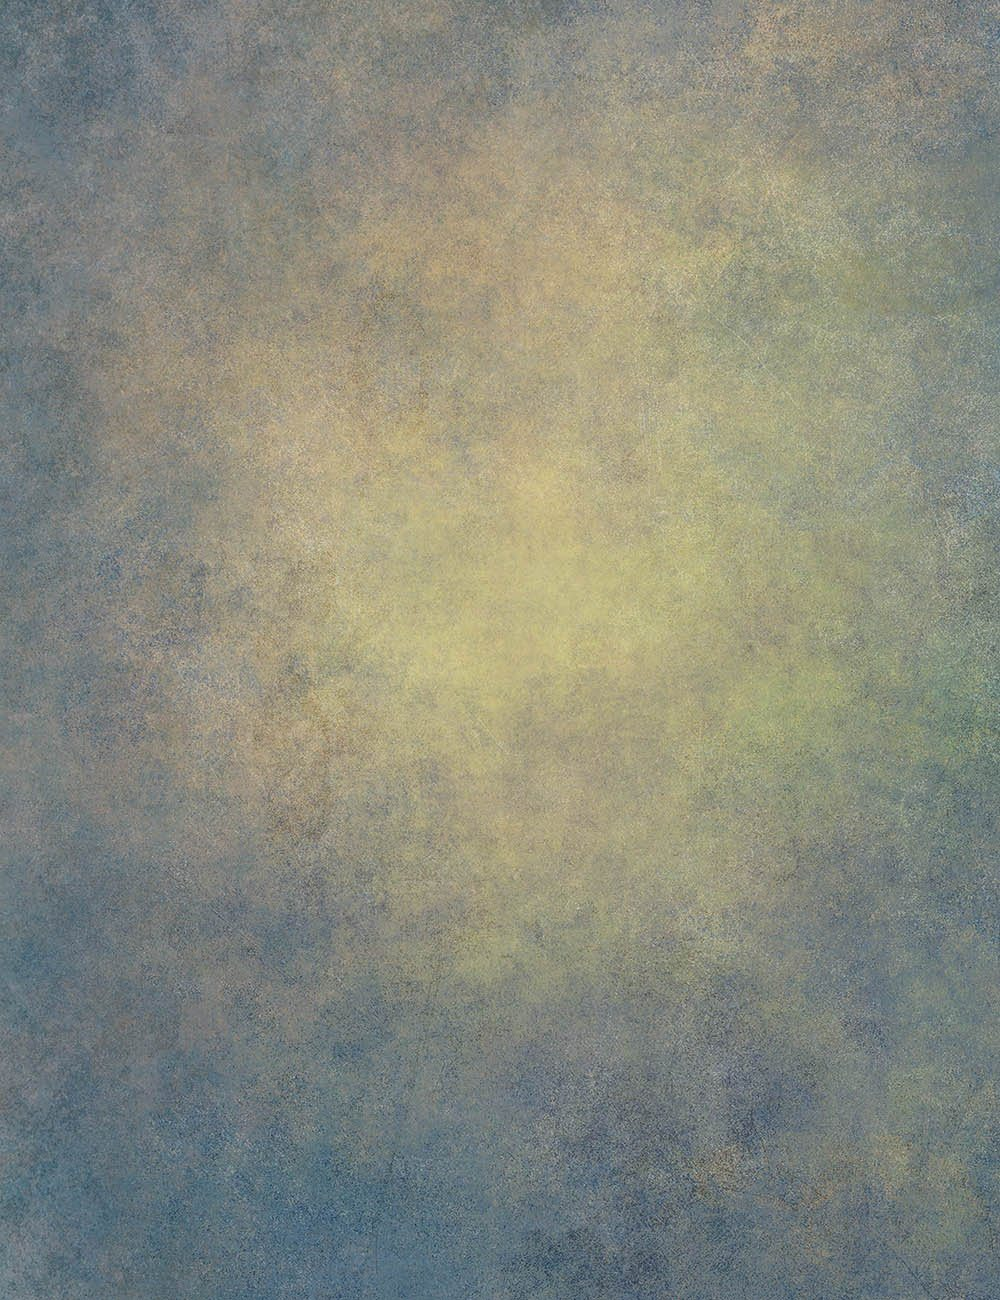 Abstract Deep Blue With Yellow In Center Printed Old  Master Backdrop - Shop Backdrop